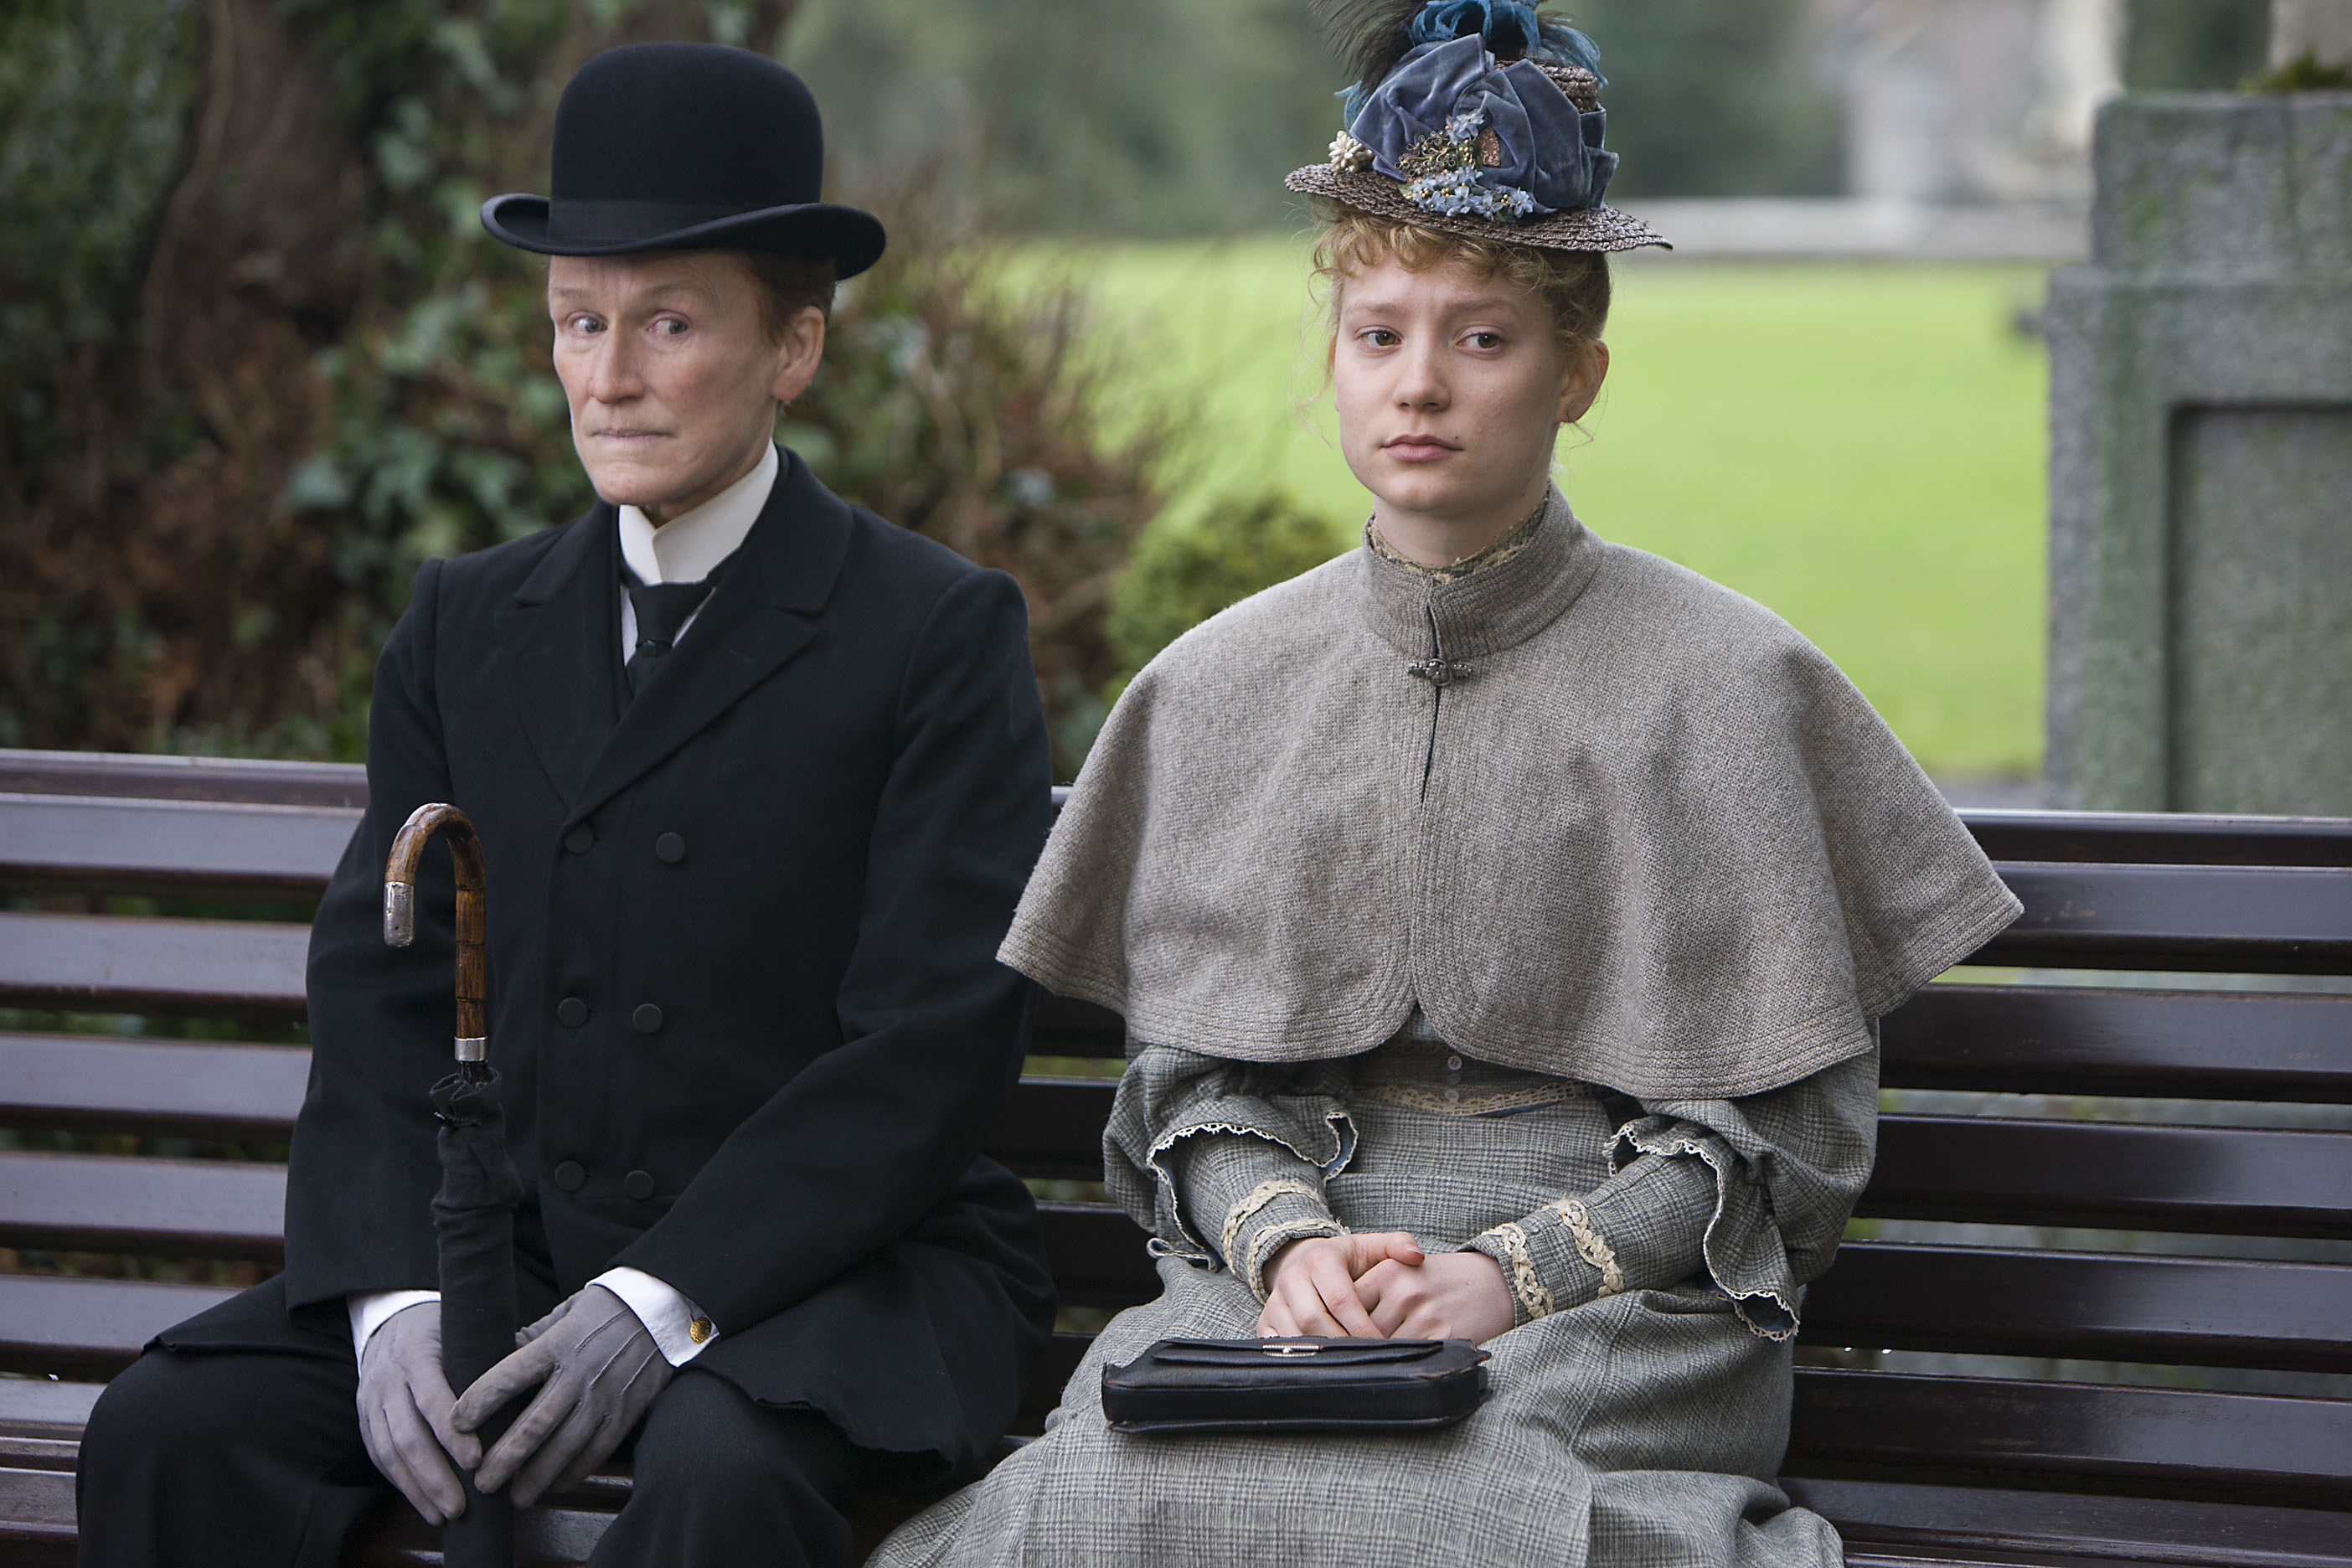 Albert nobbs mia wasikowska glenn close